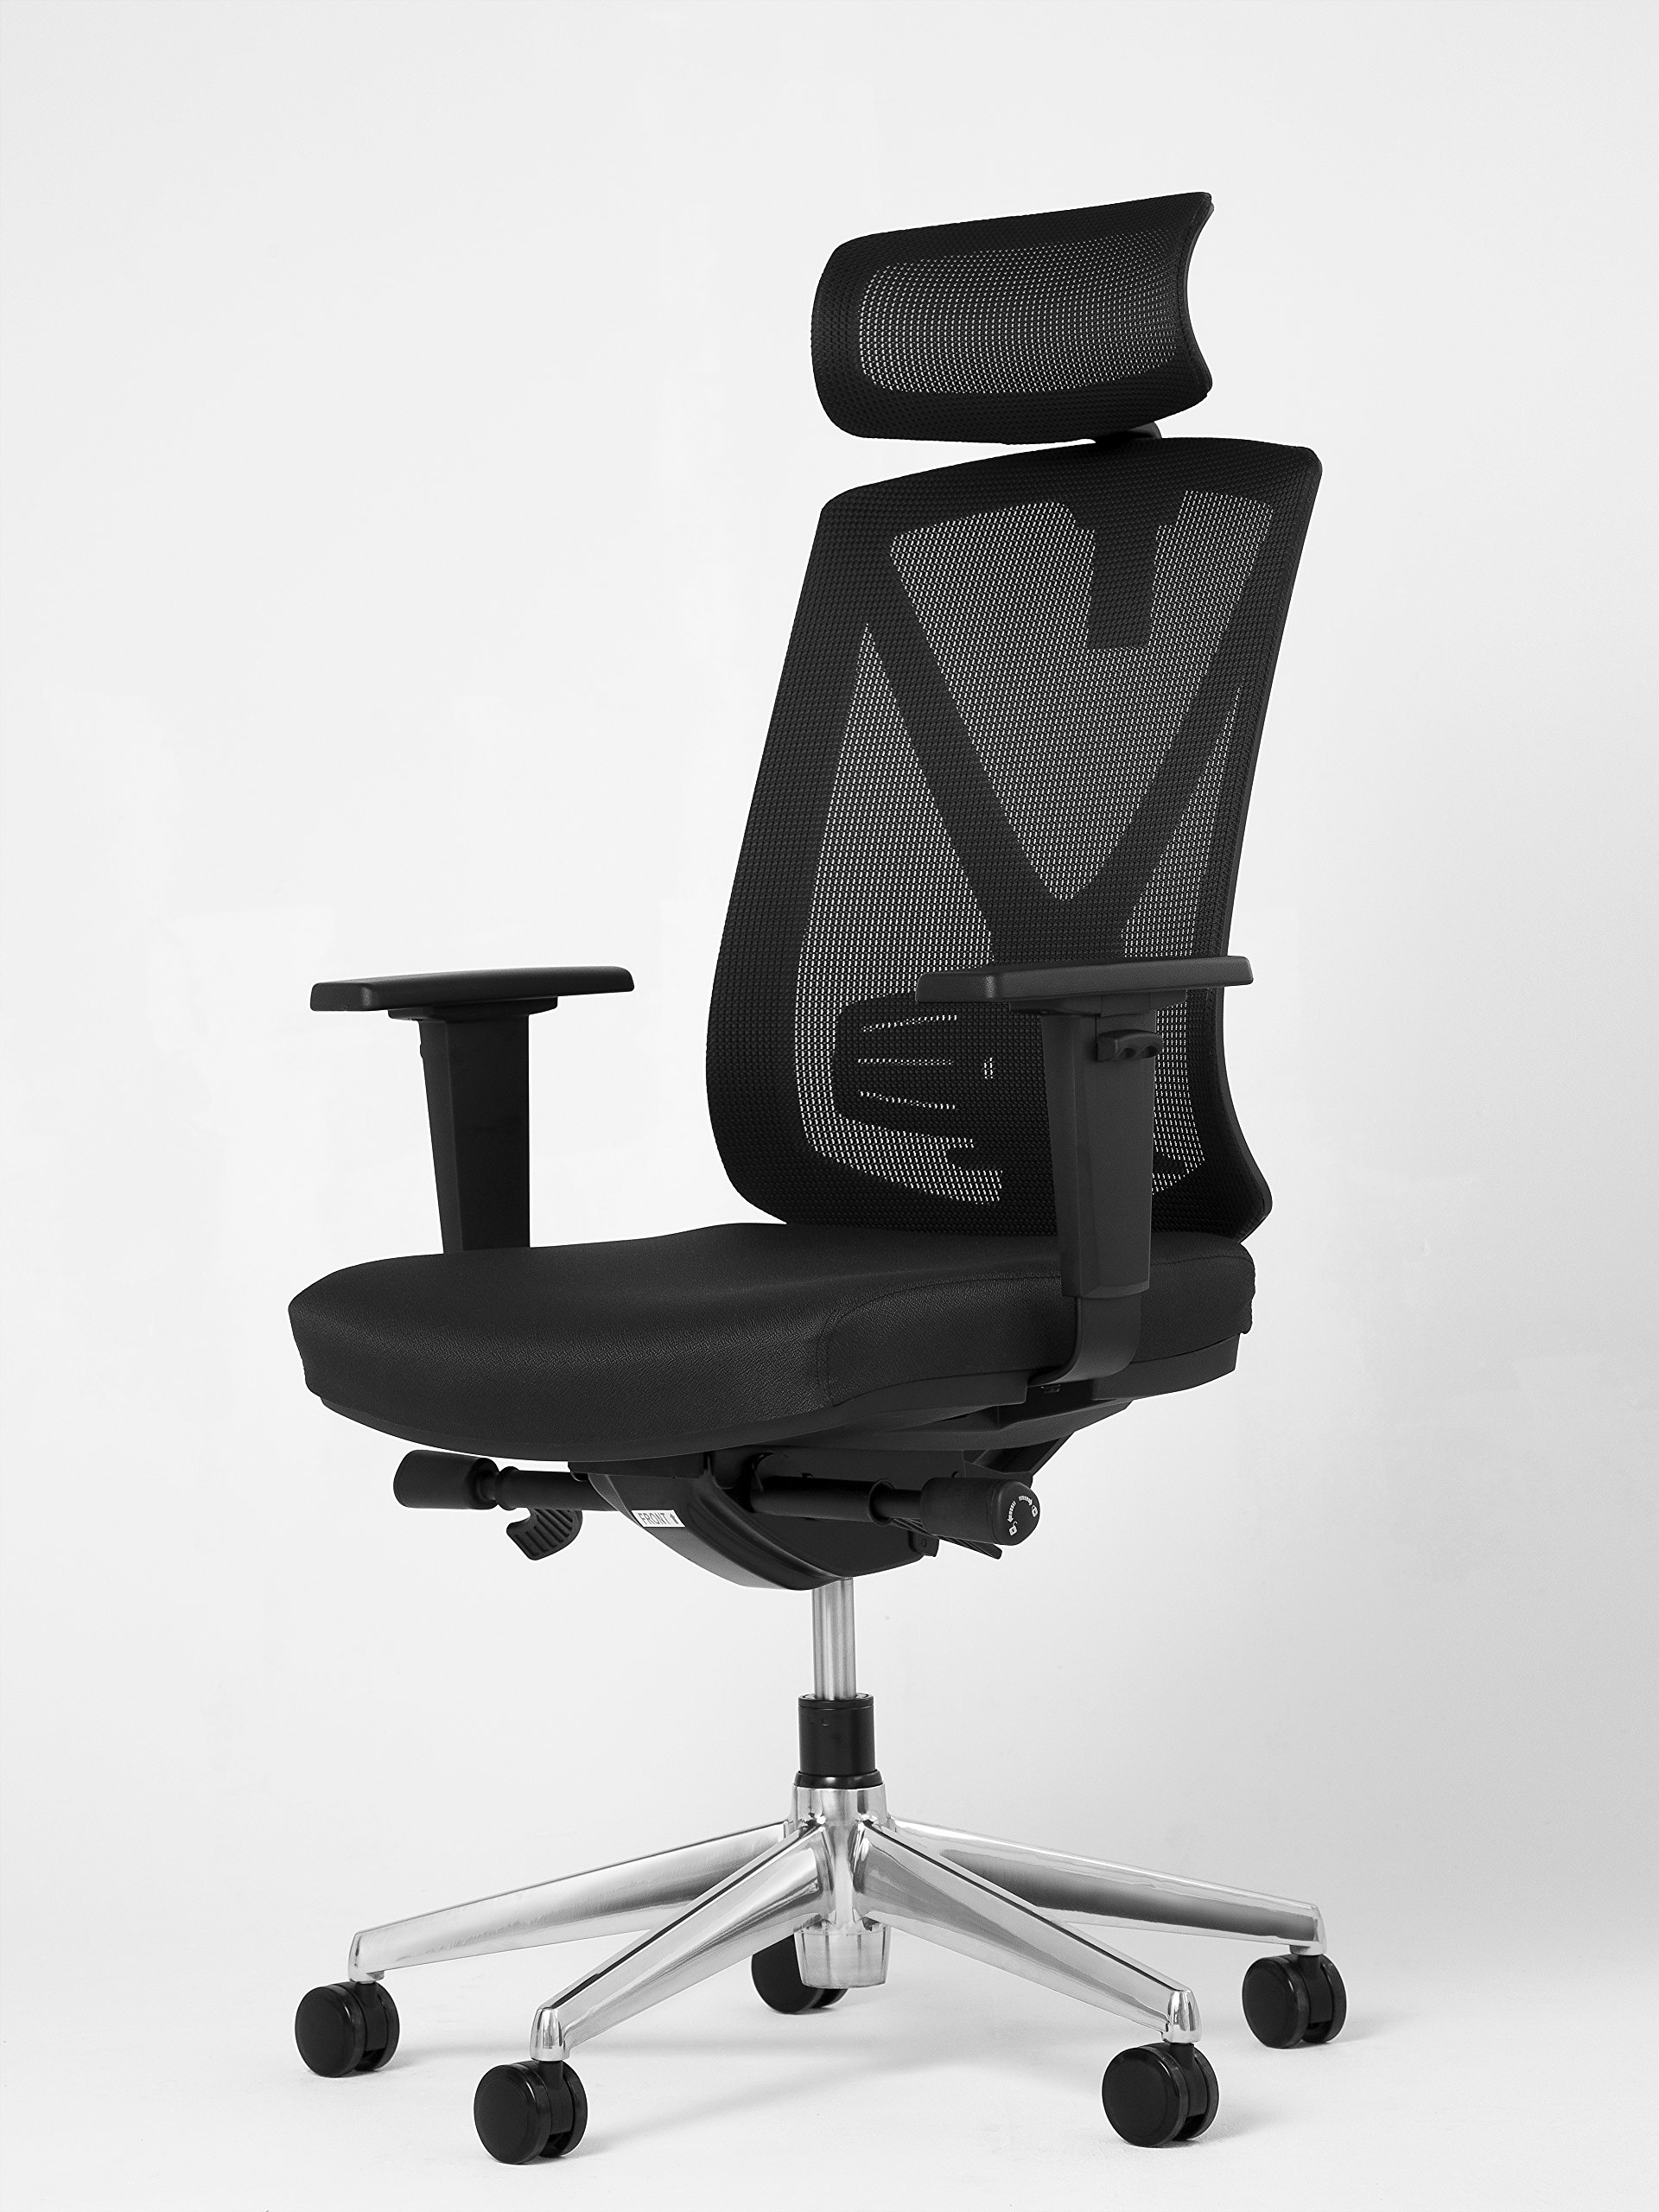 Office Factor Executive Chair, Office Mesh Chair, Desk Chair, Fully Adjustable Home Office Furniture, Ergonomic Seating for Professional Work Spaces, Office Chair